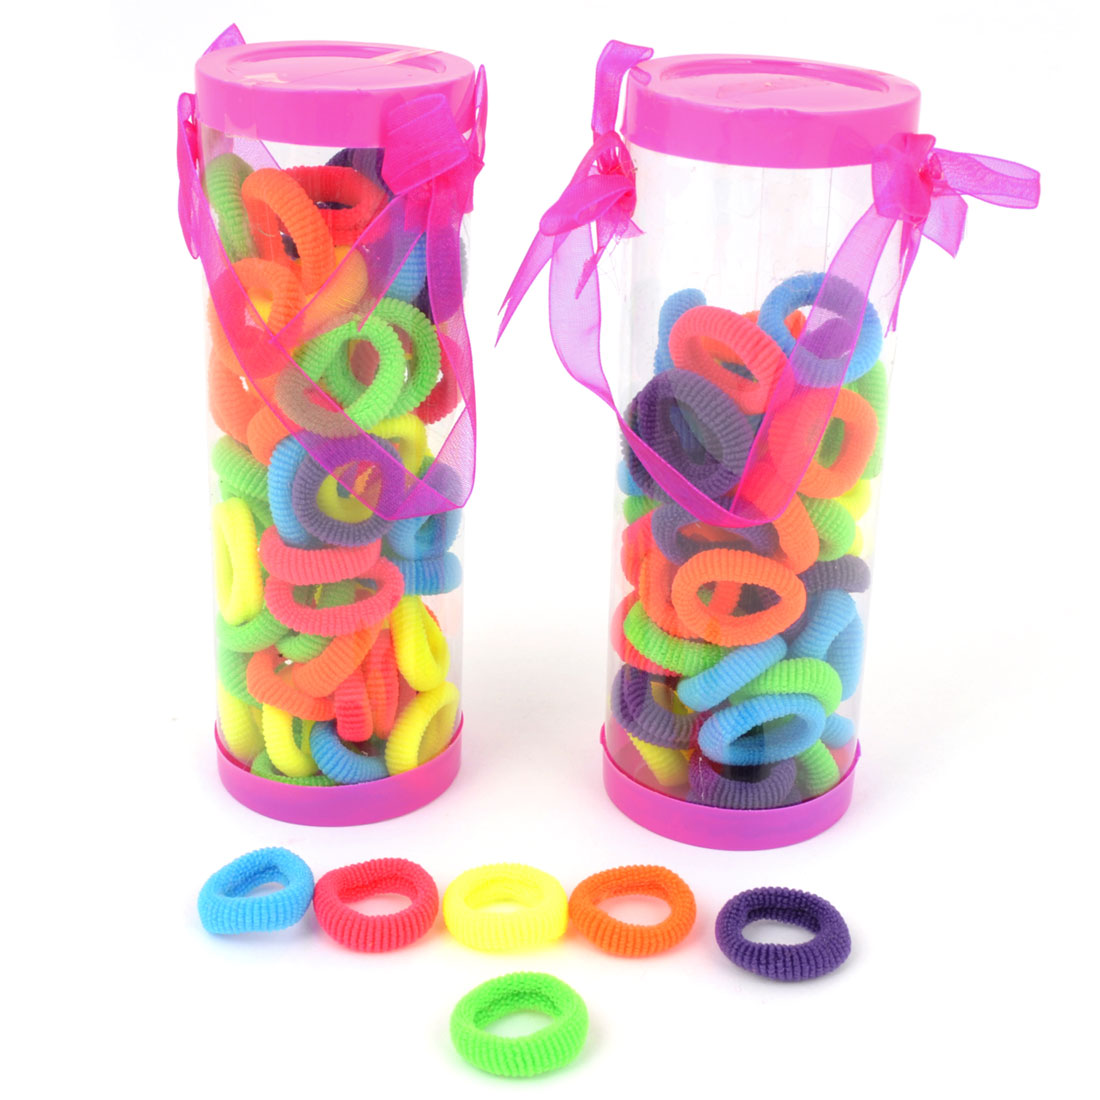 Women Colorful Elastic Rubber Hair Braid Ties Ponytail Holder 120 Pcs